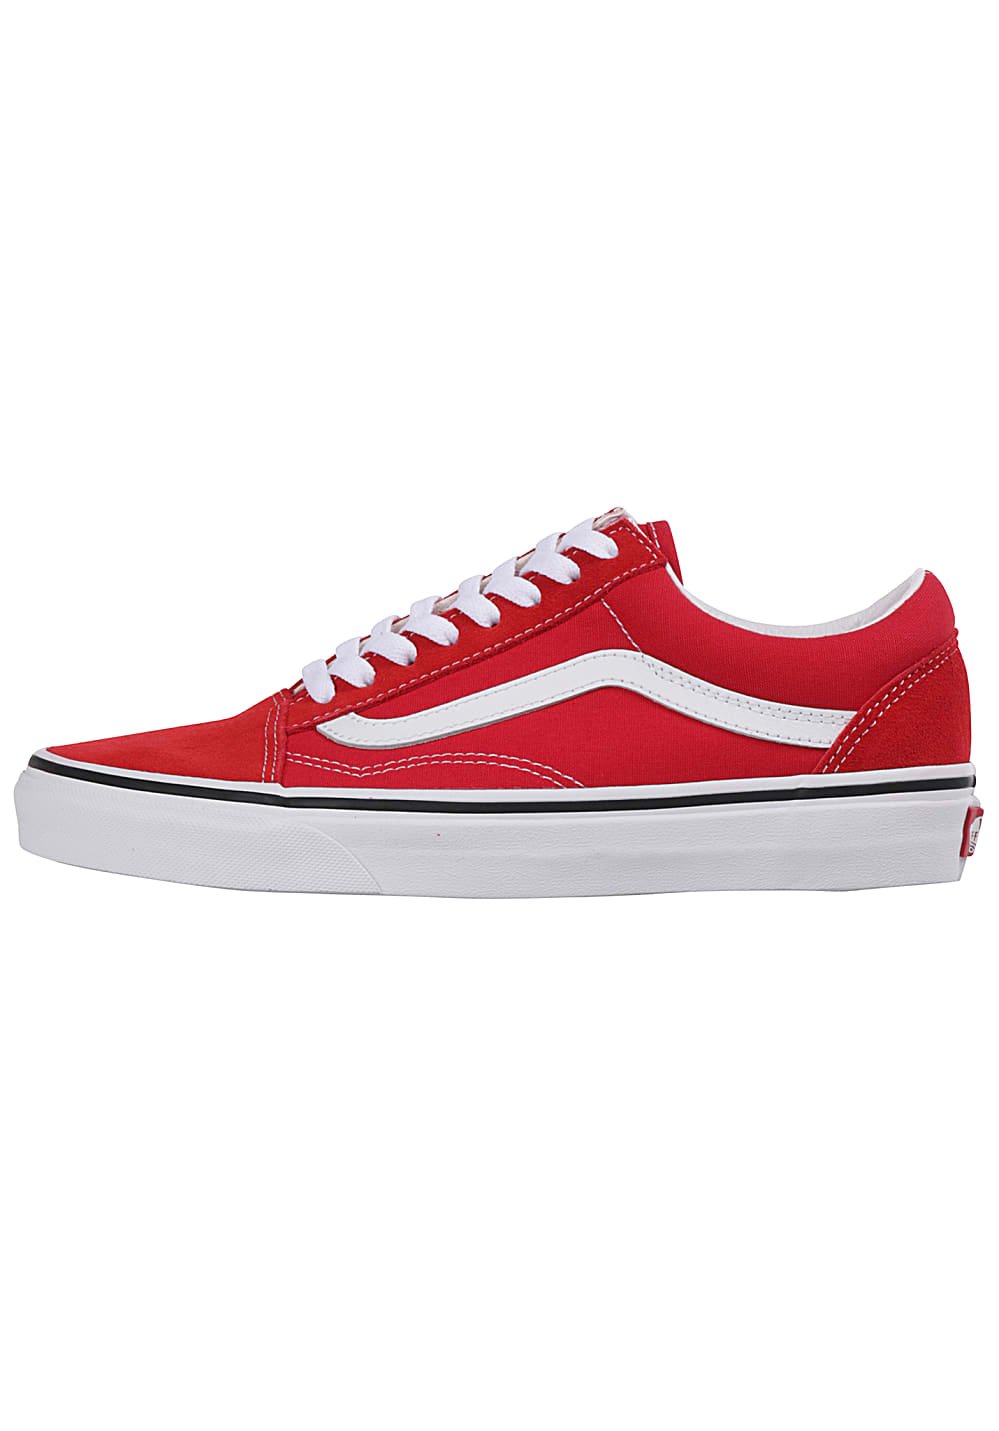 Vans Old Skool - Baskets pour Femme - Rouge